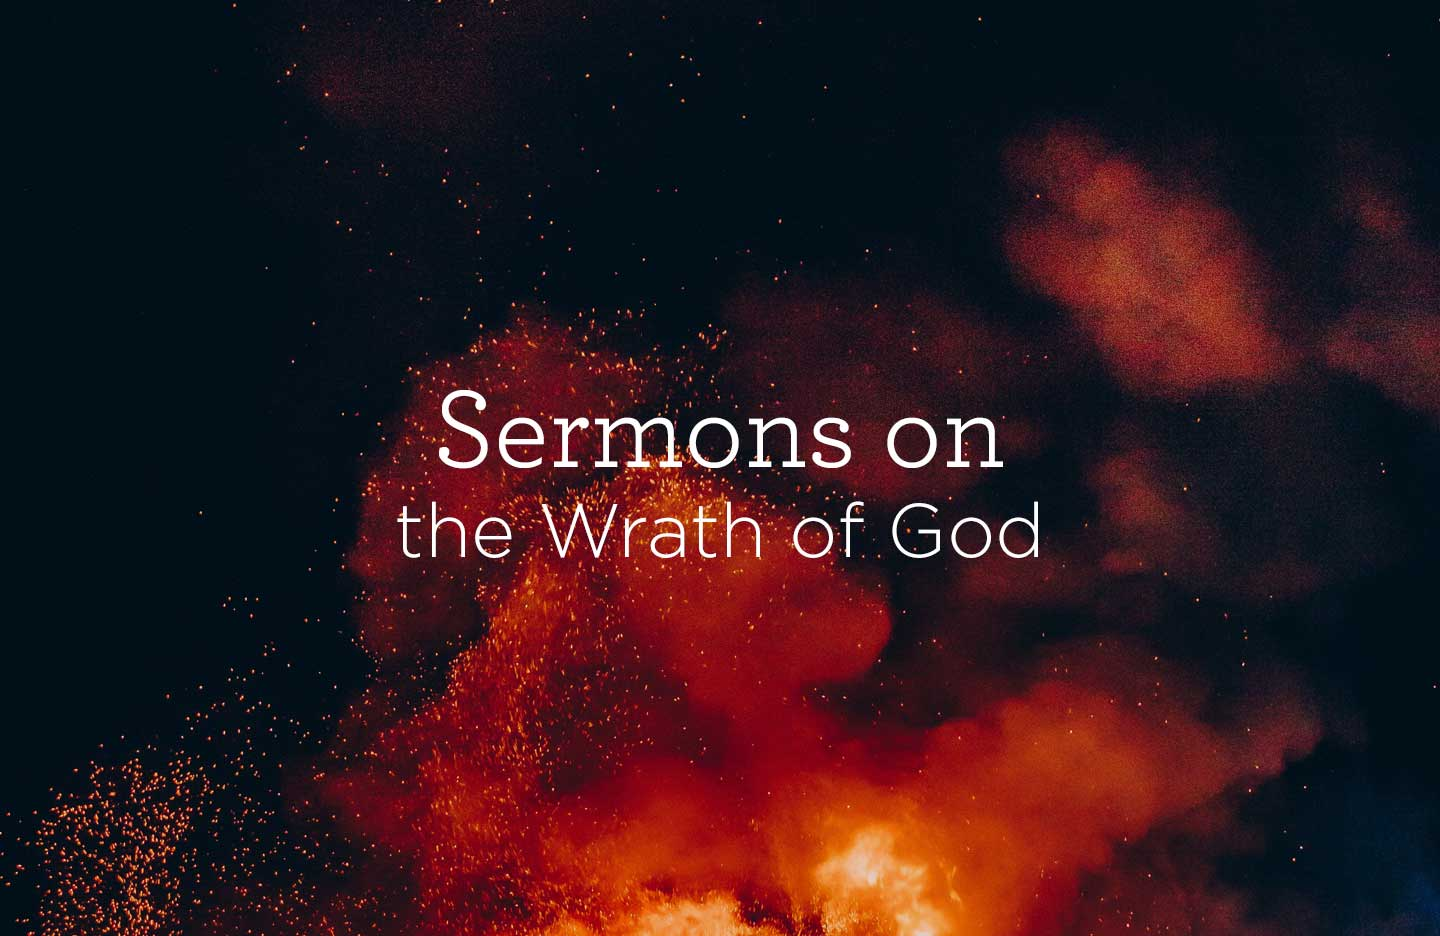 thumbnail image for Sermons about the Wrath of God